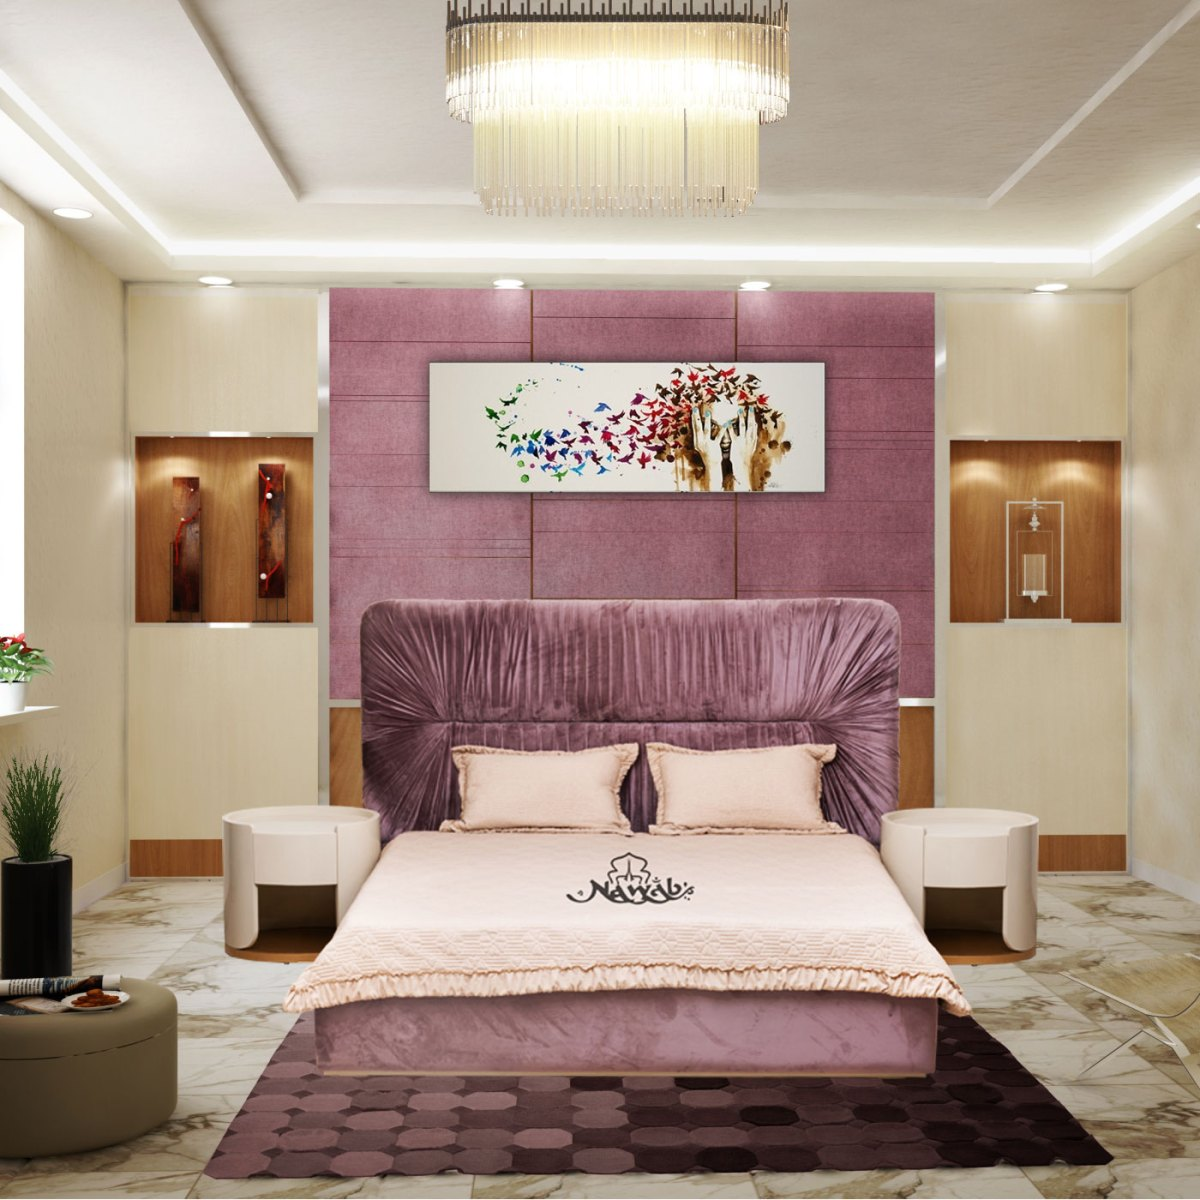 velvet-upholstery-laminated-inside-hydraulic-bed-backround